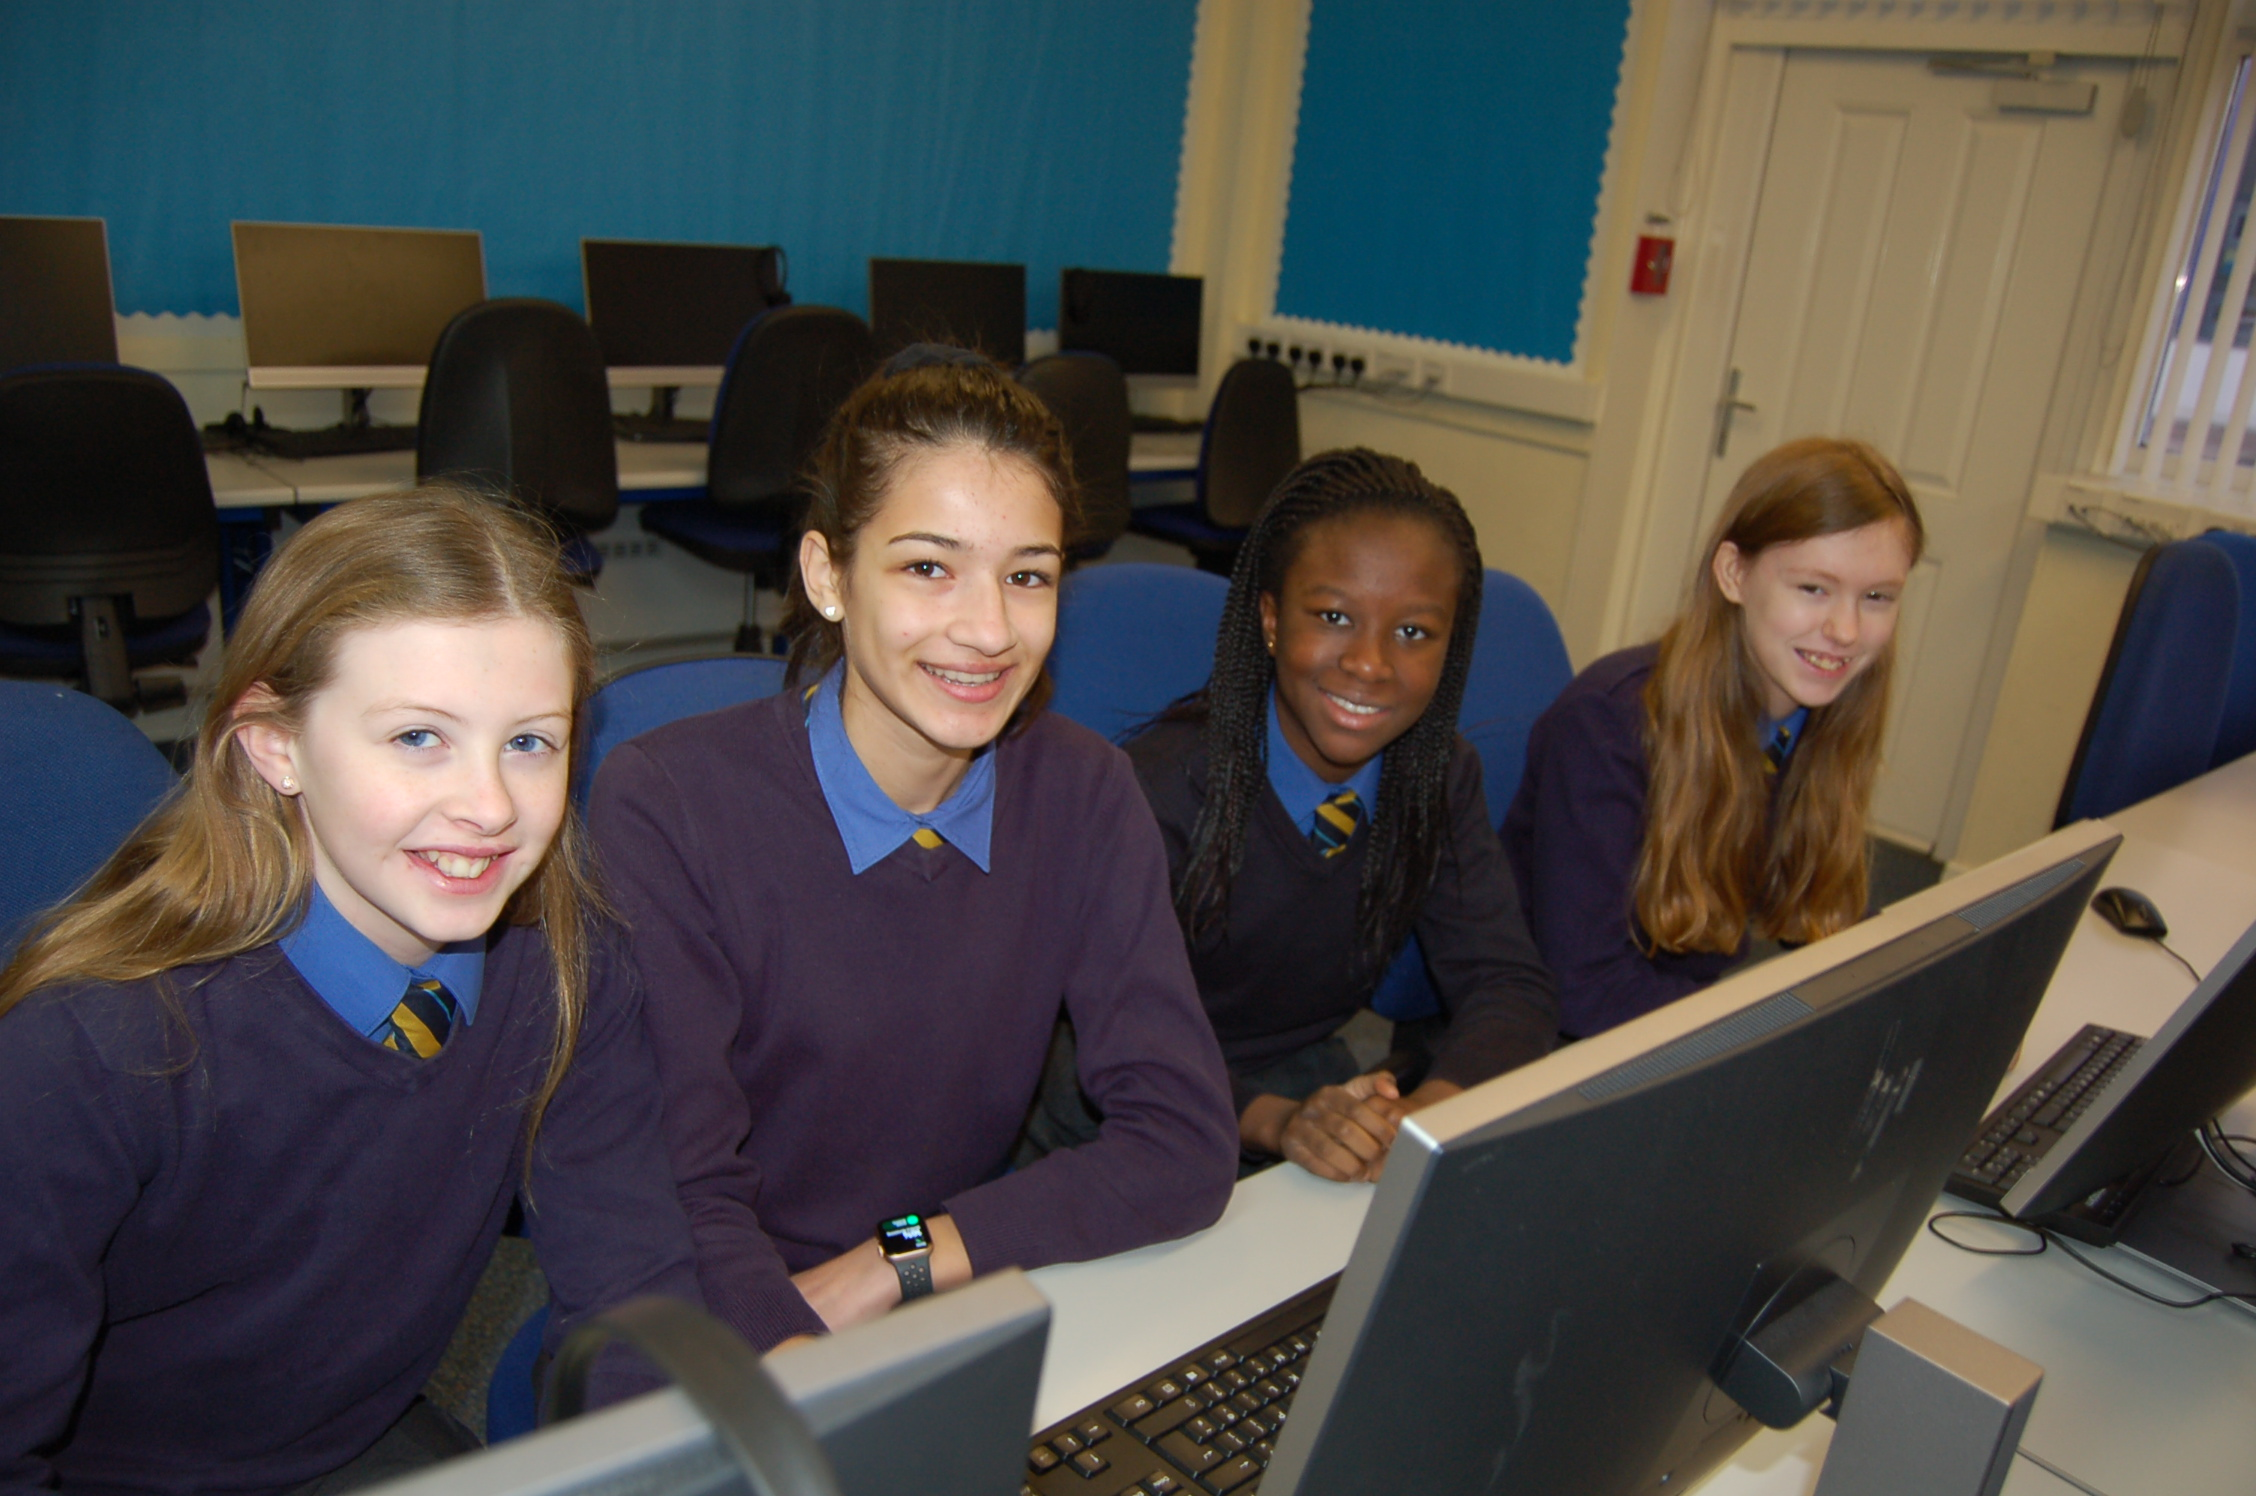 Team Minerva from St Margaret's School for Girls will compete in the competition.